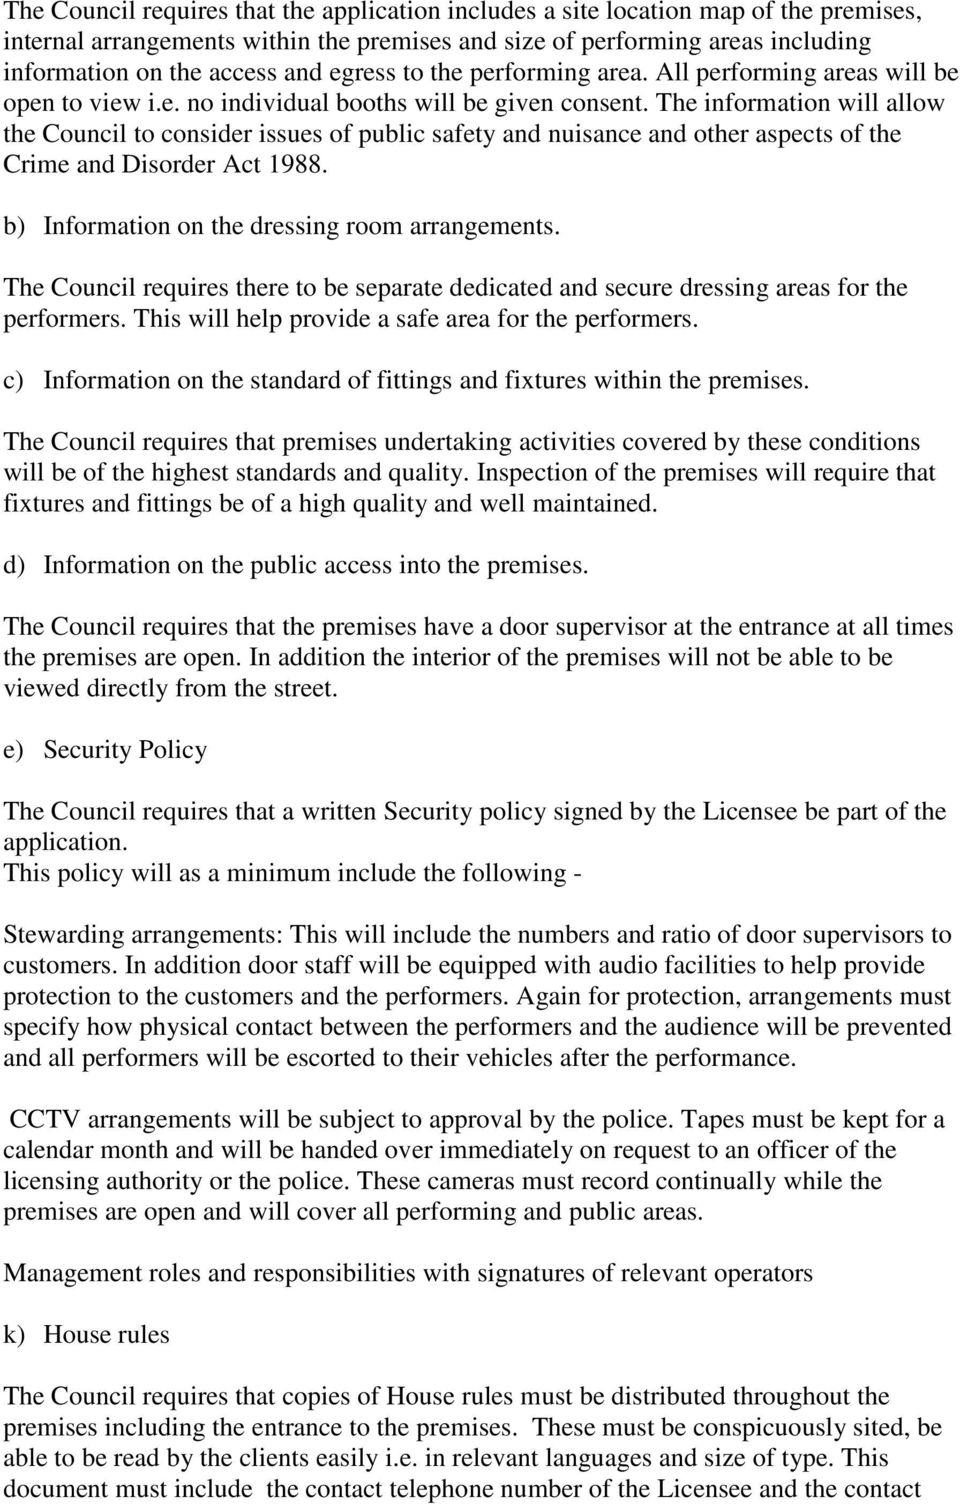 The information will allow the Council to consider issues of public safety and nuisance and other aspects of the Crime and Disorder Act 1988. b) Information on the dressing room arrangements.